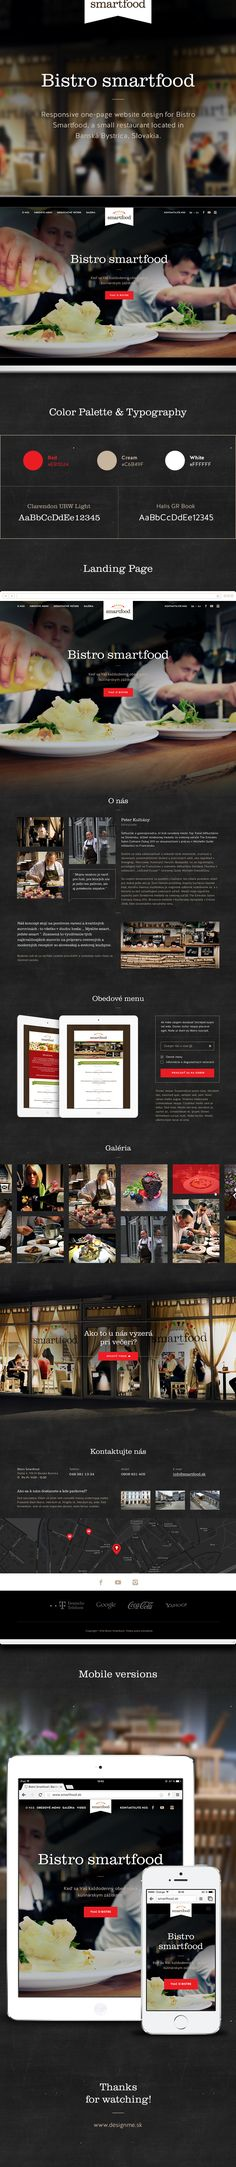 Responsive one-page website design for Bistro Smartfood, a small restaurant located in Banská Bystrica, Slovakia.